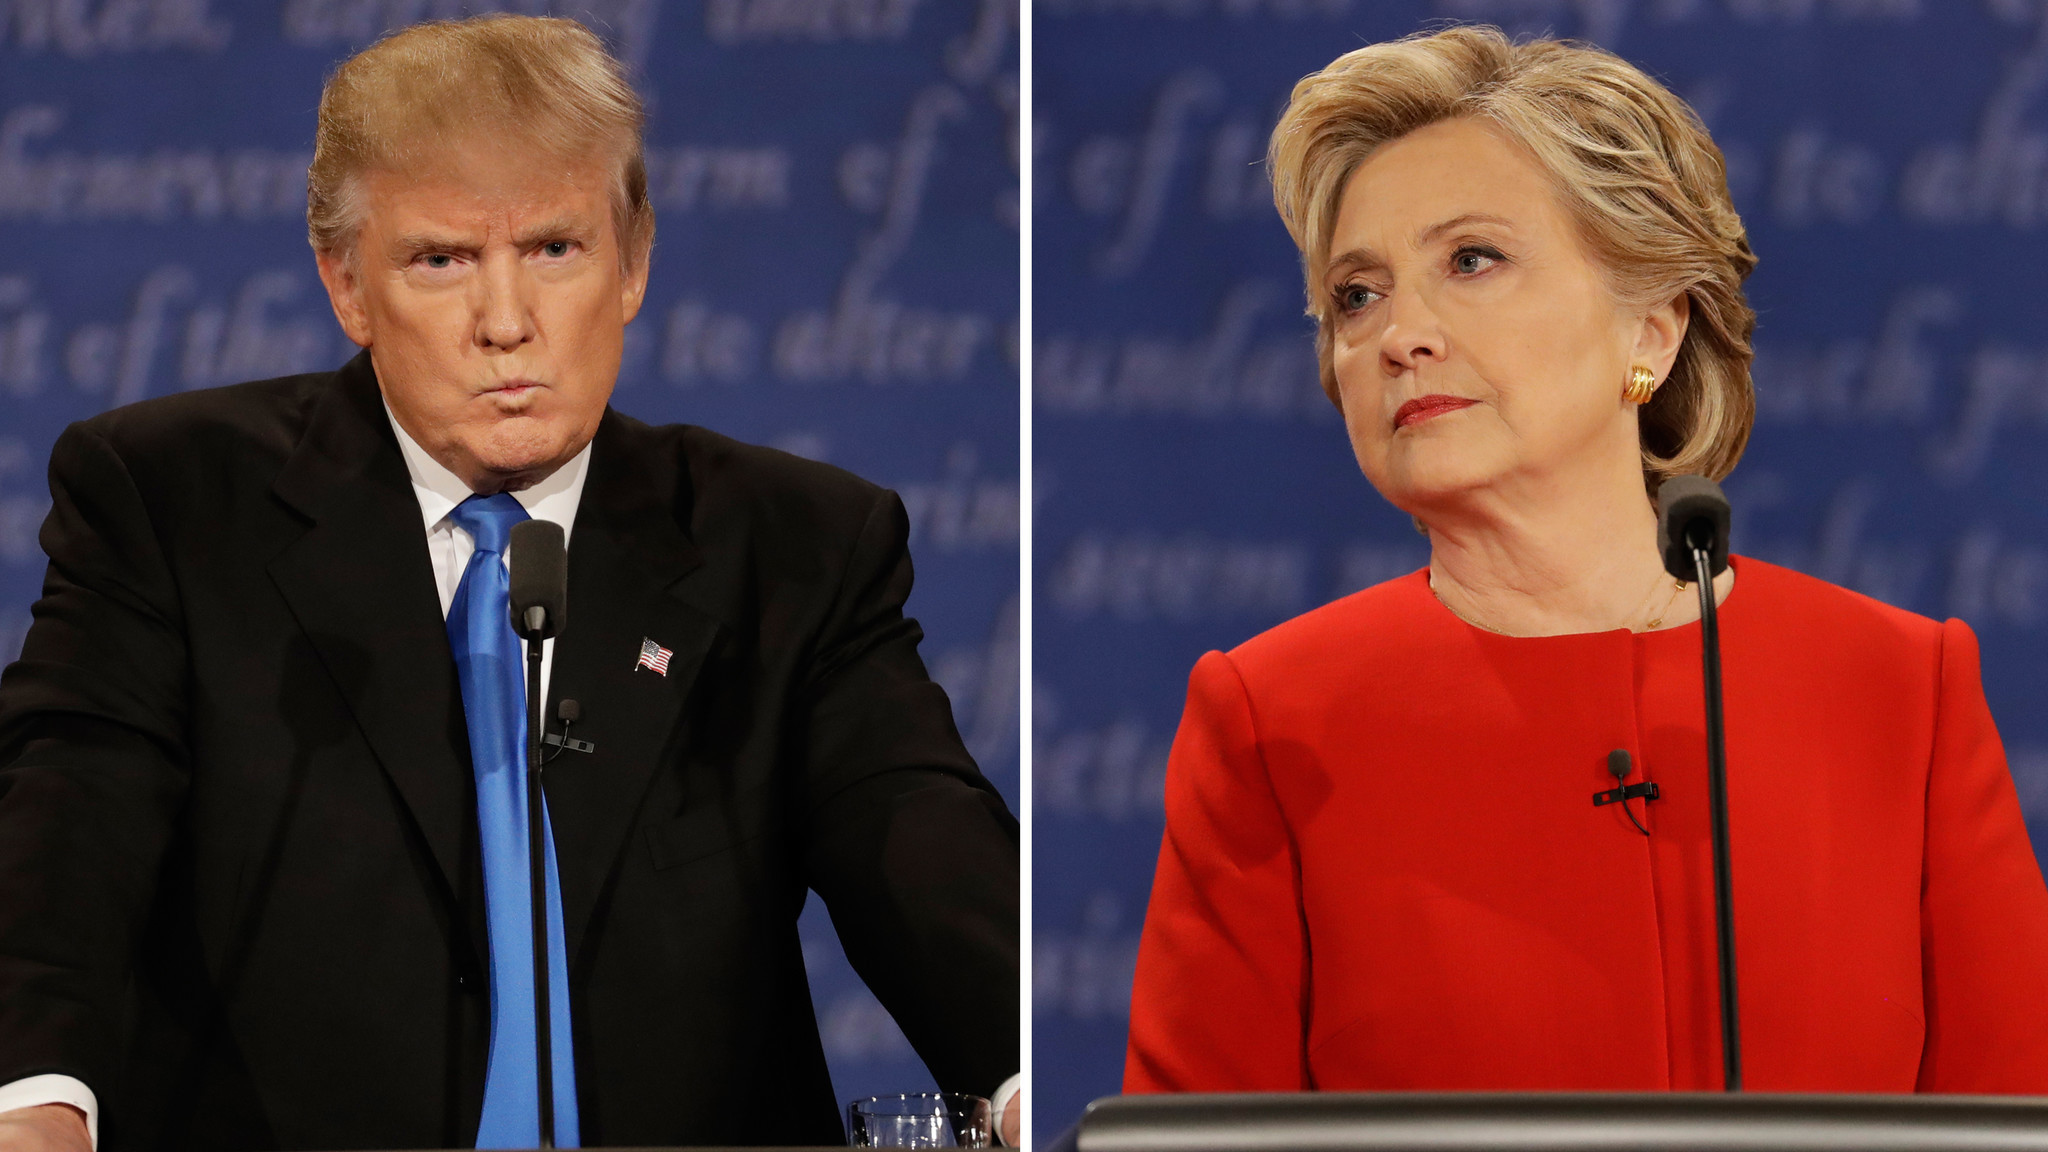 Clinton and Trump clash over their pasts and their plans in ferocious  opening presidential debate – LA Times